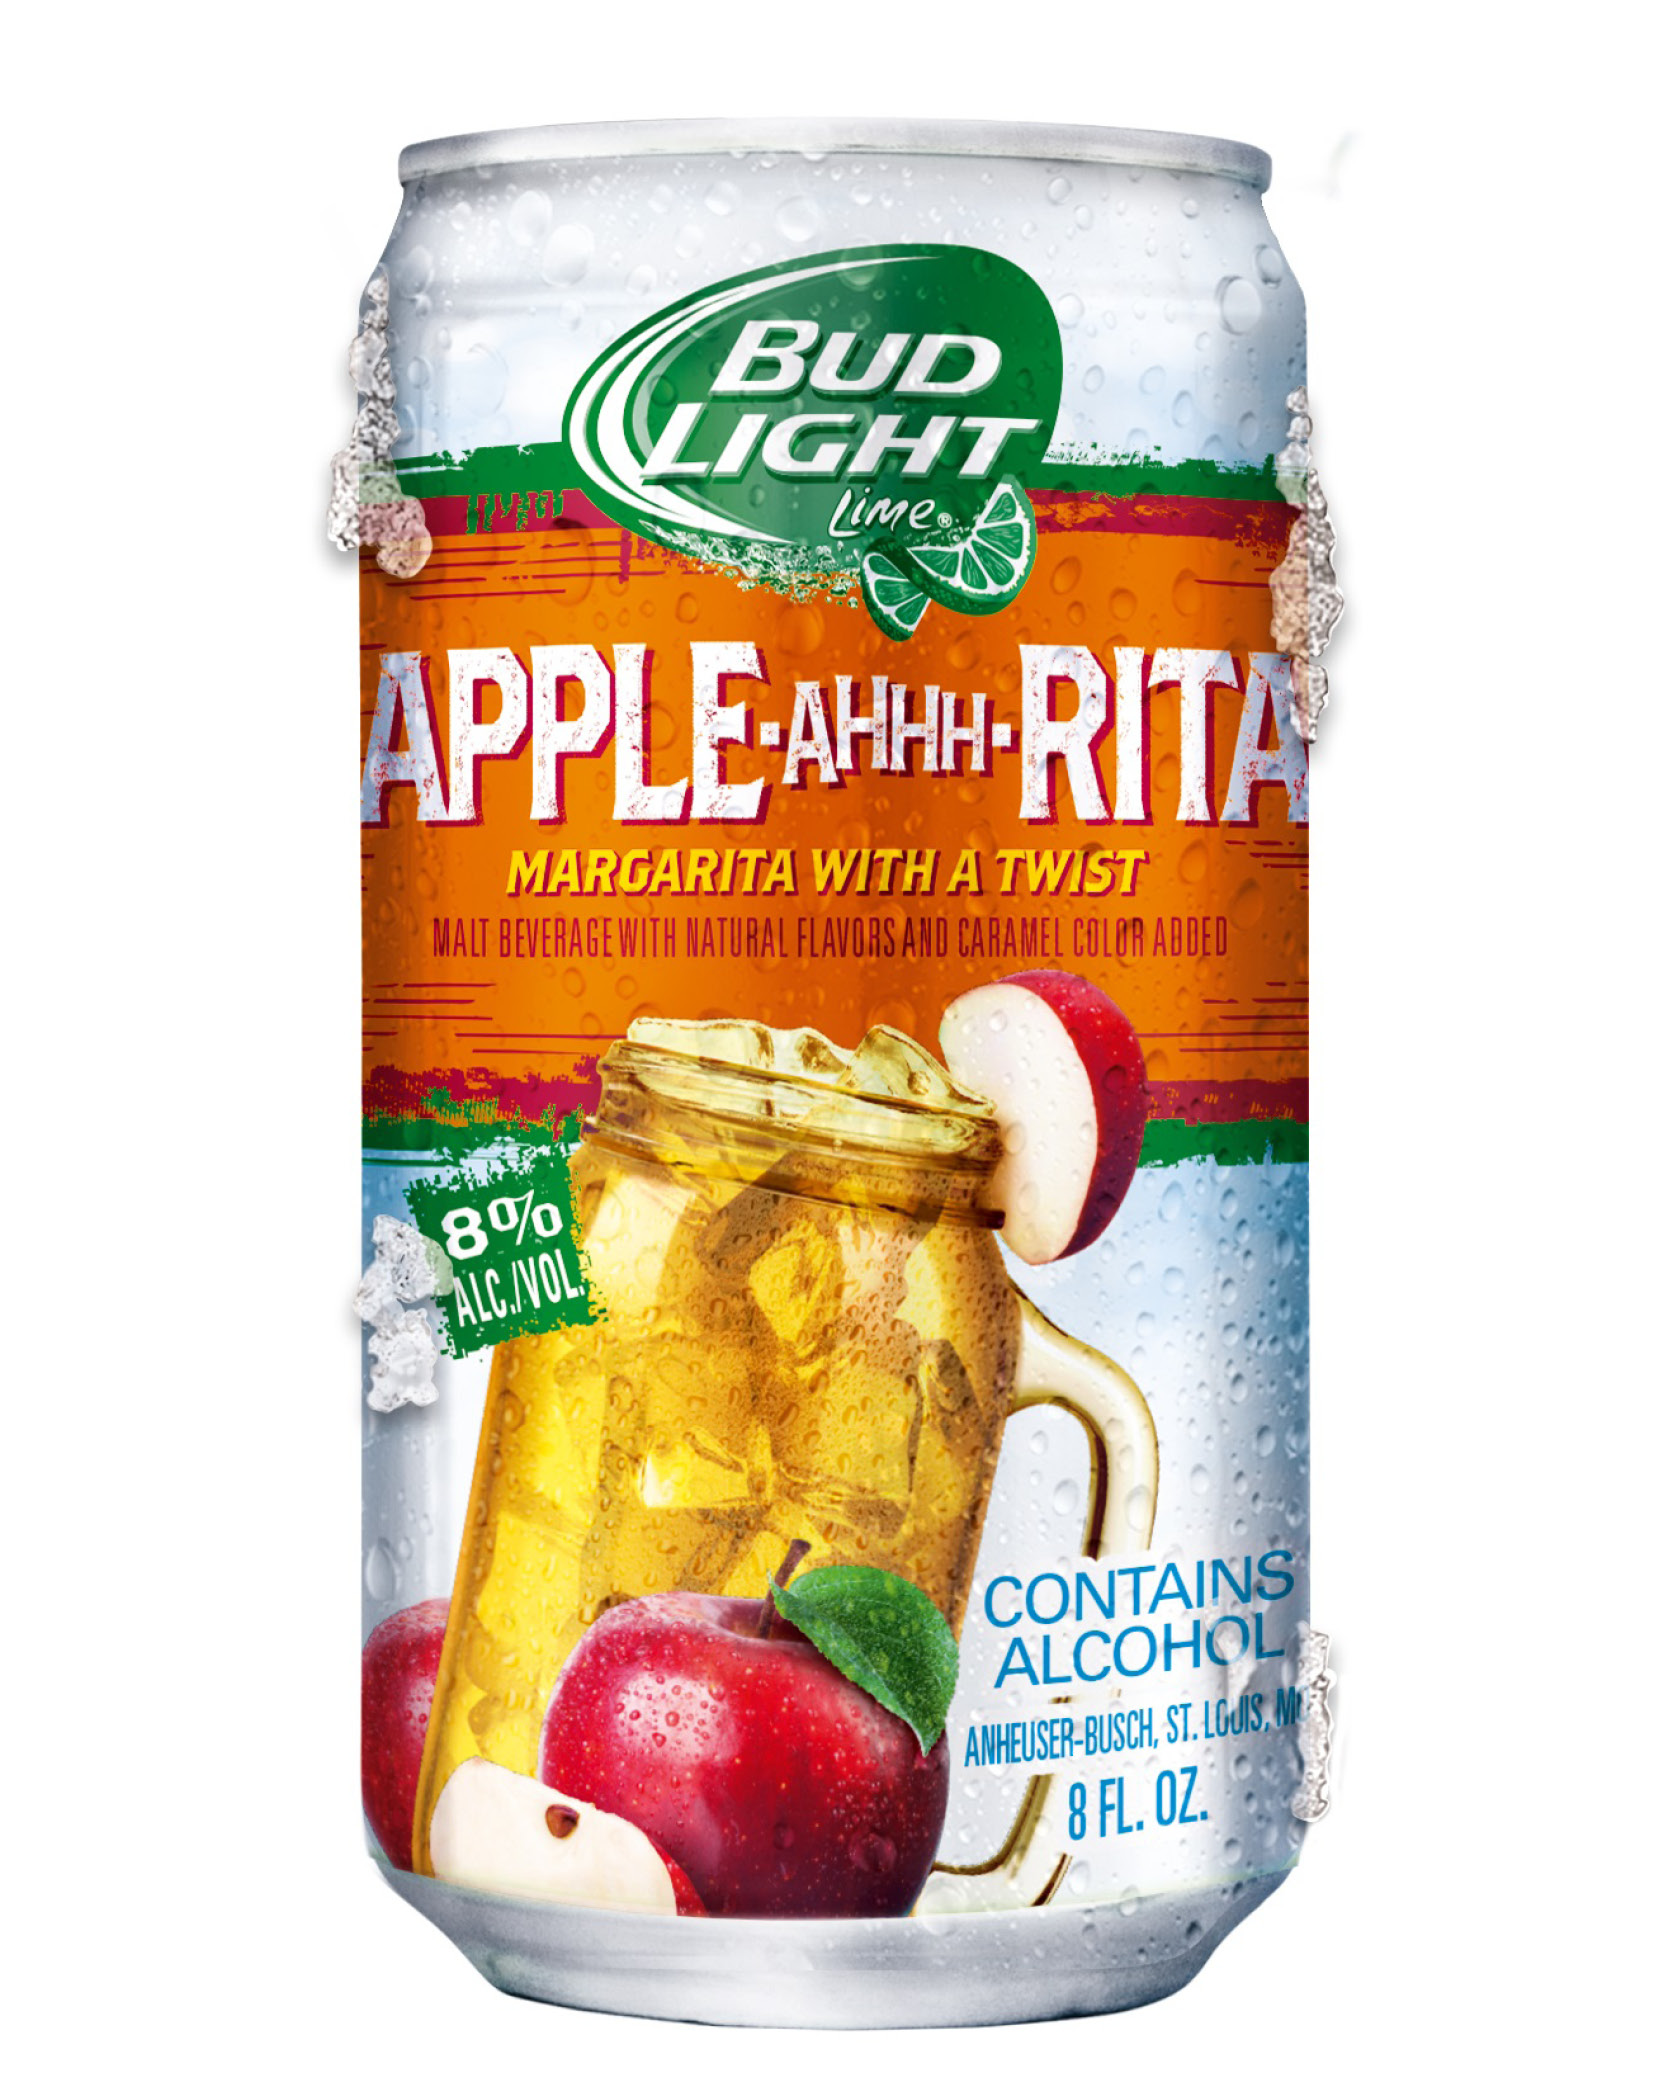 Bud Light Lime Apple Ahhh Rita Has The Great Taste Of An Apple Margarita  With A Twist Of Bud Light Lime For A Delightfully Refreshing Finish.